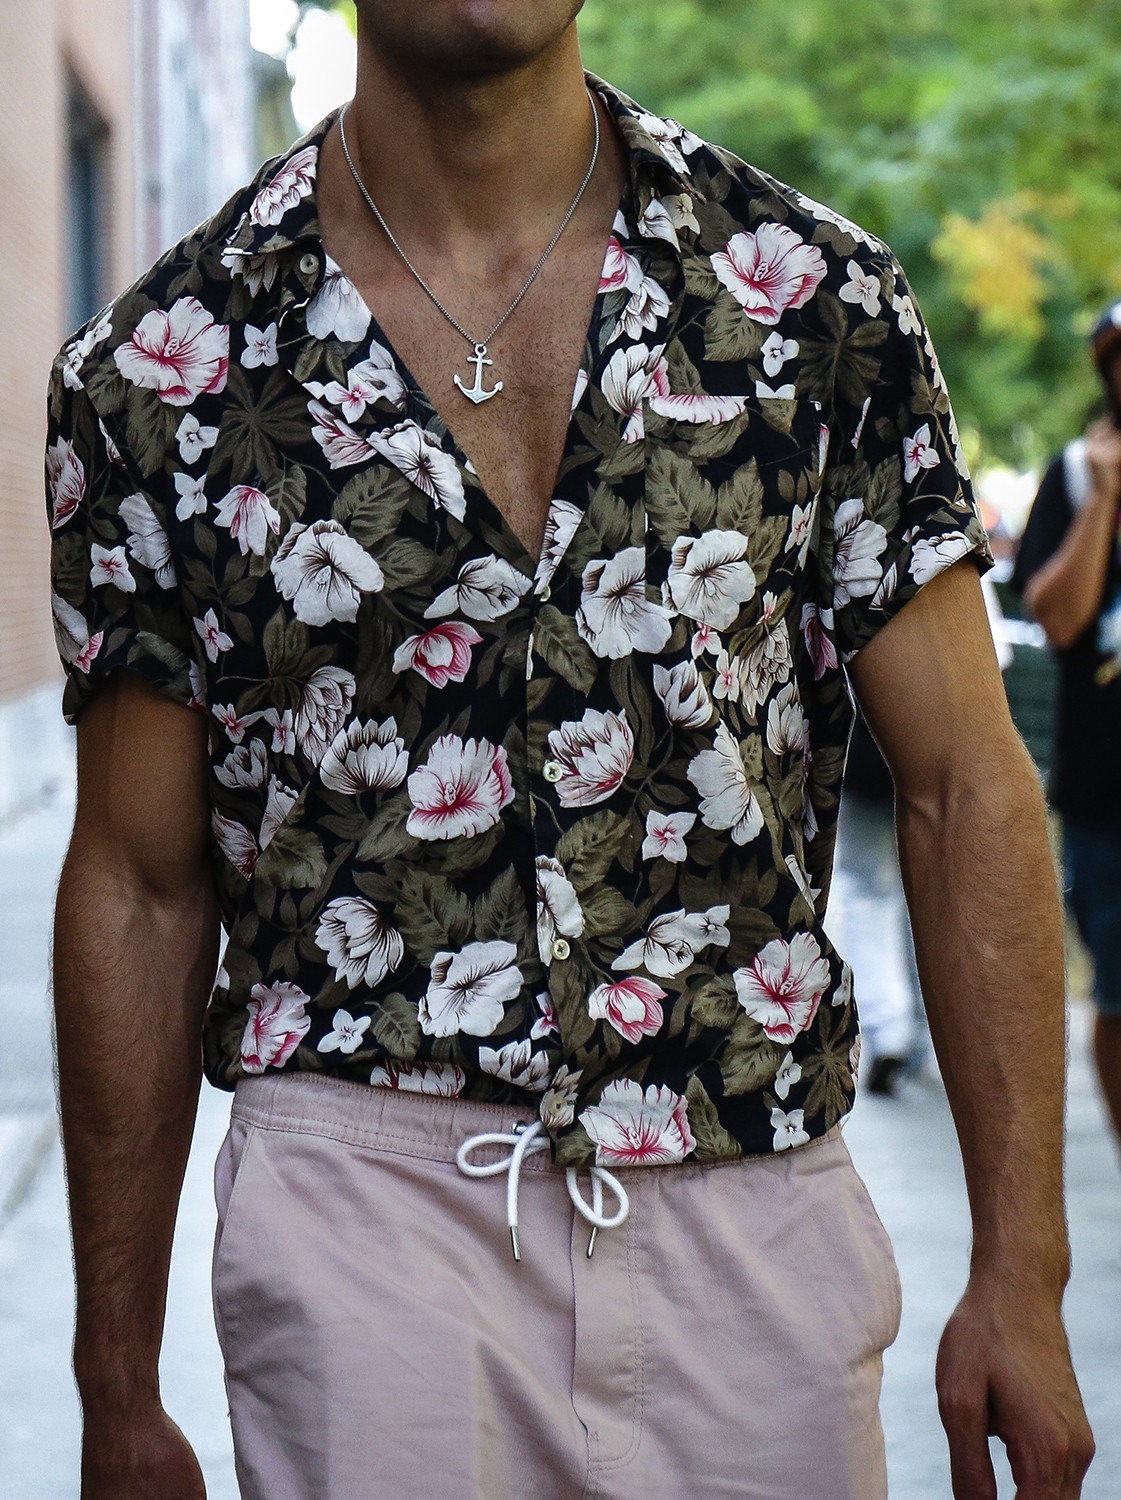 Men's outfit idea for 2021 with stone shorts, neutral espadrilles. Suitable for spring and summer.